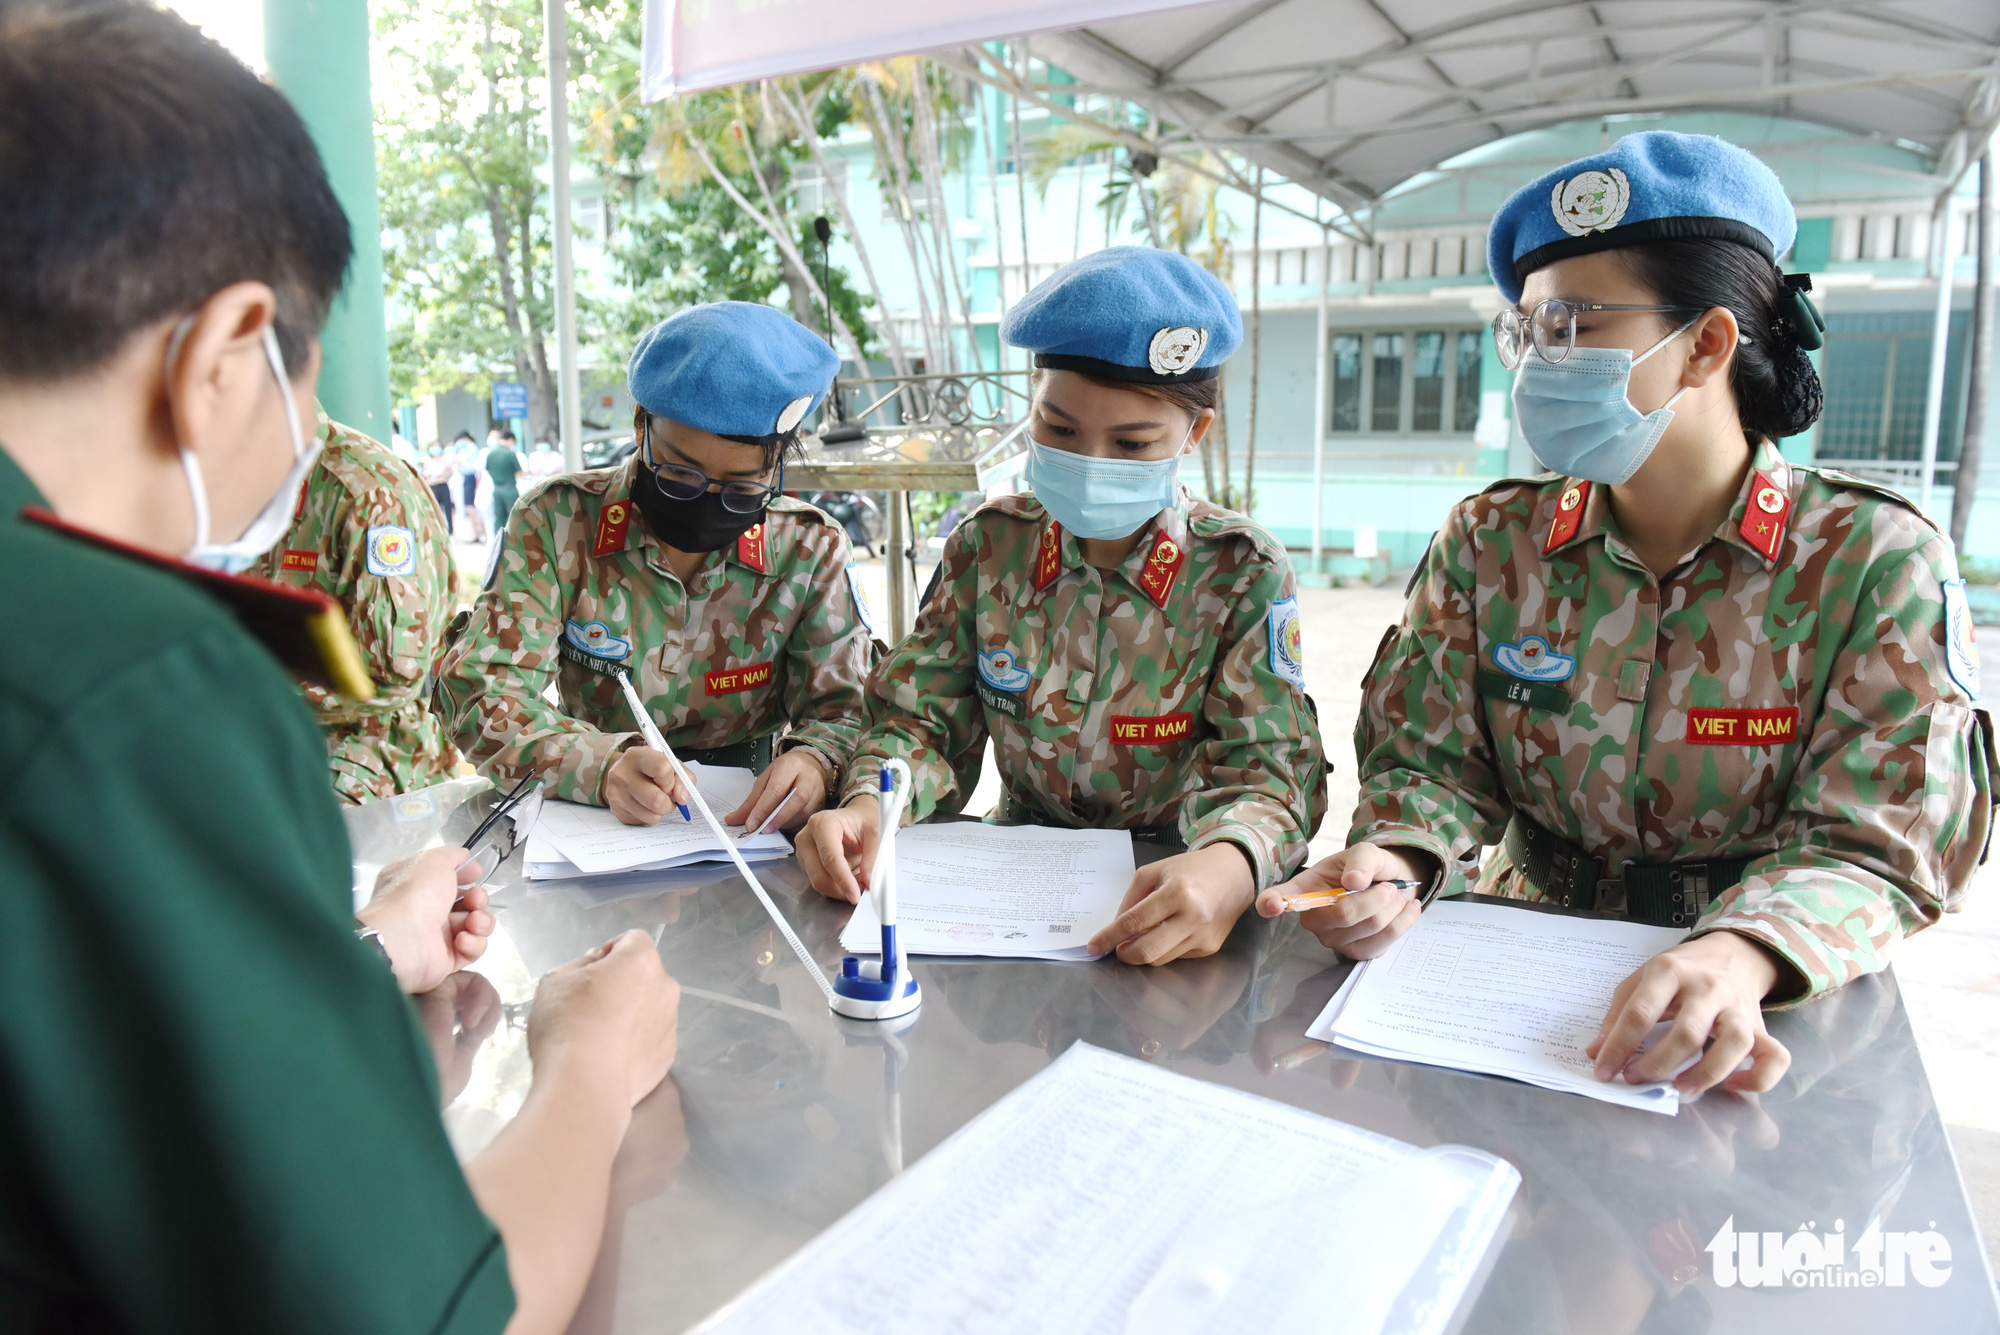 Vietnamese soldiers administered COVID-19 vaccine prior to UN peacekeeping mission in South Sudan